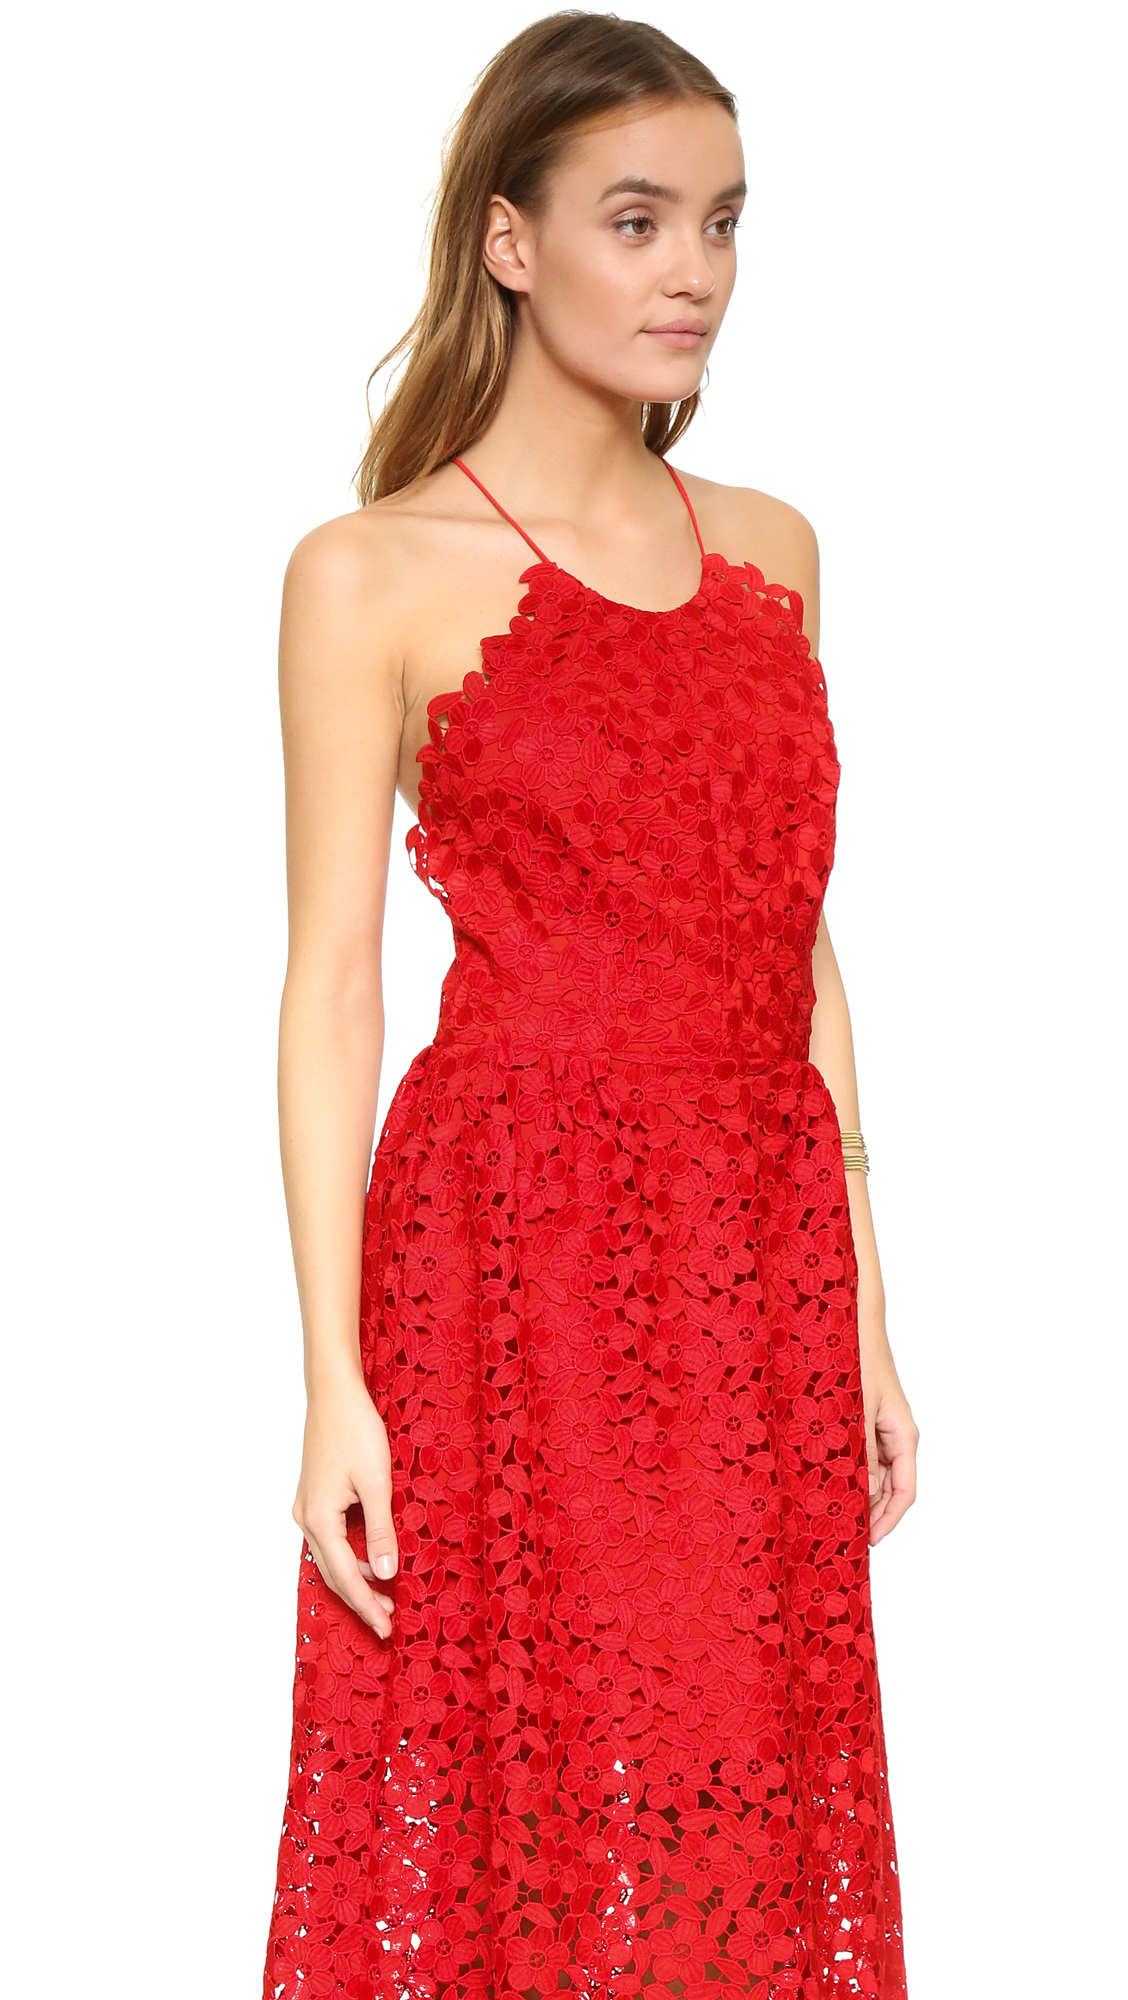 Cynthia Rowley Lace Back Dress in Red - Lyst